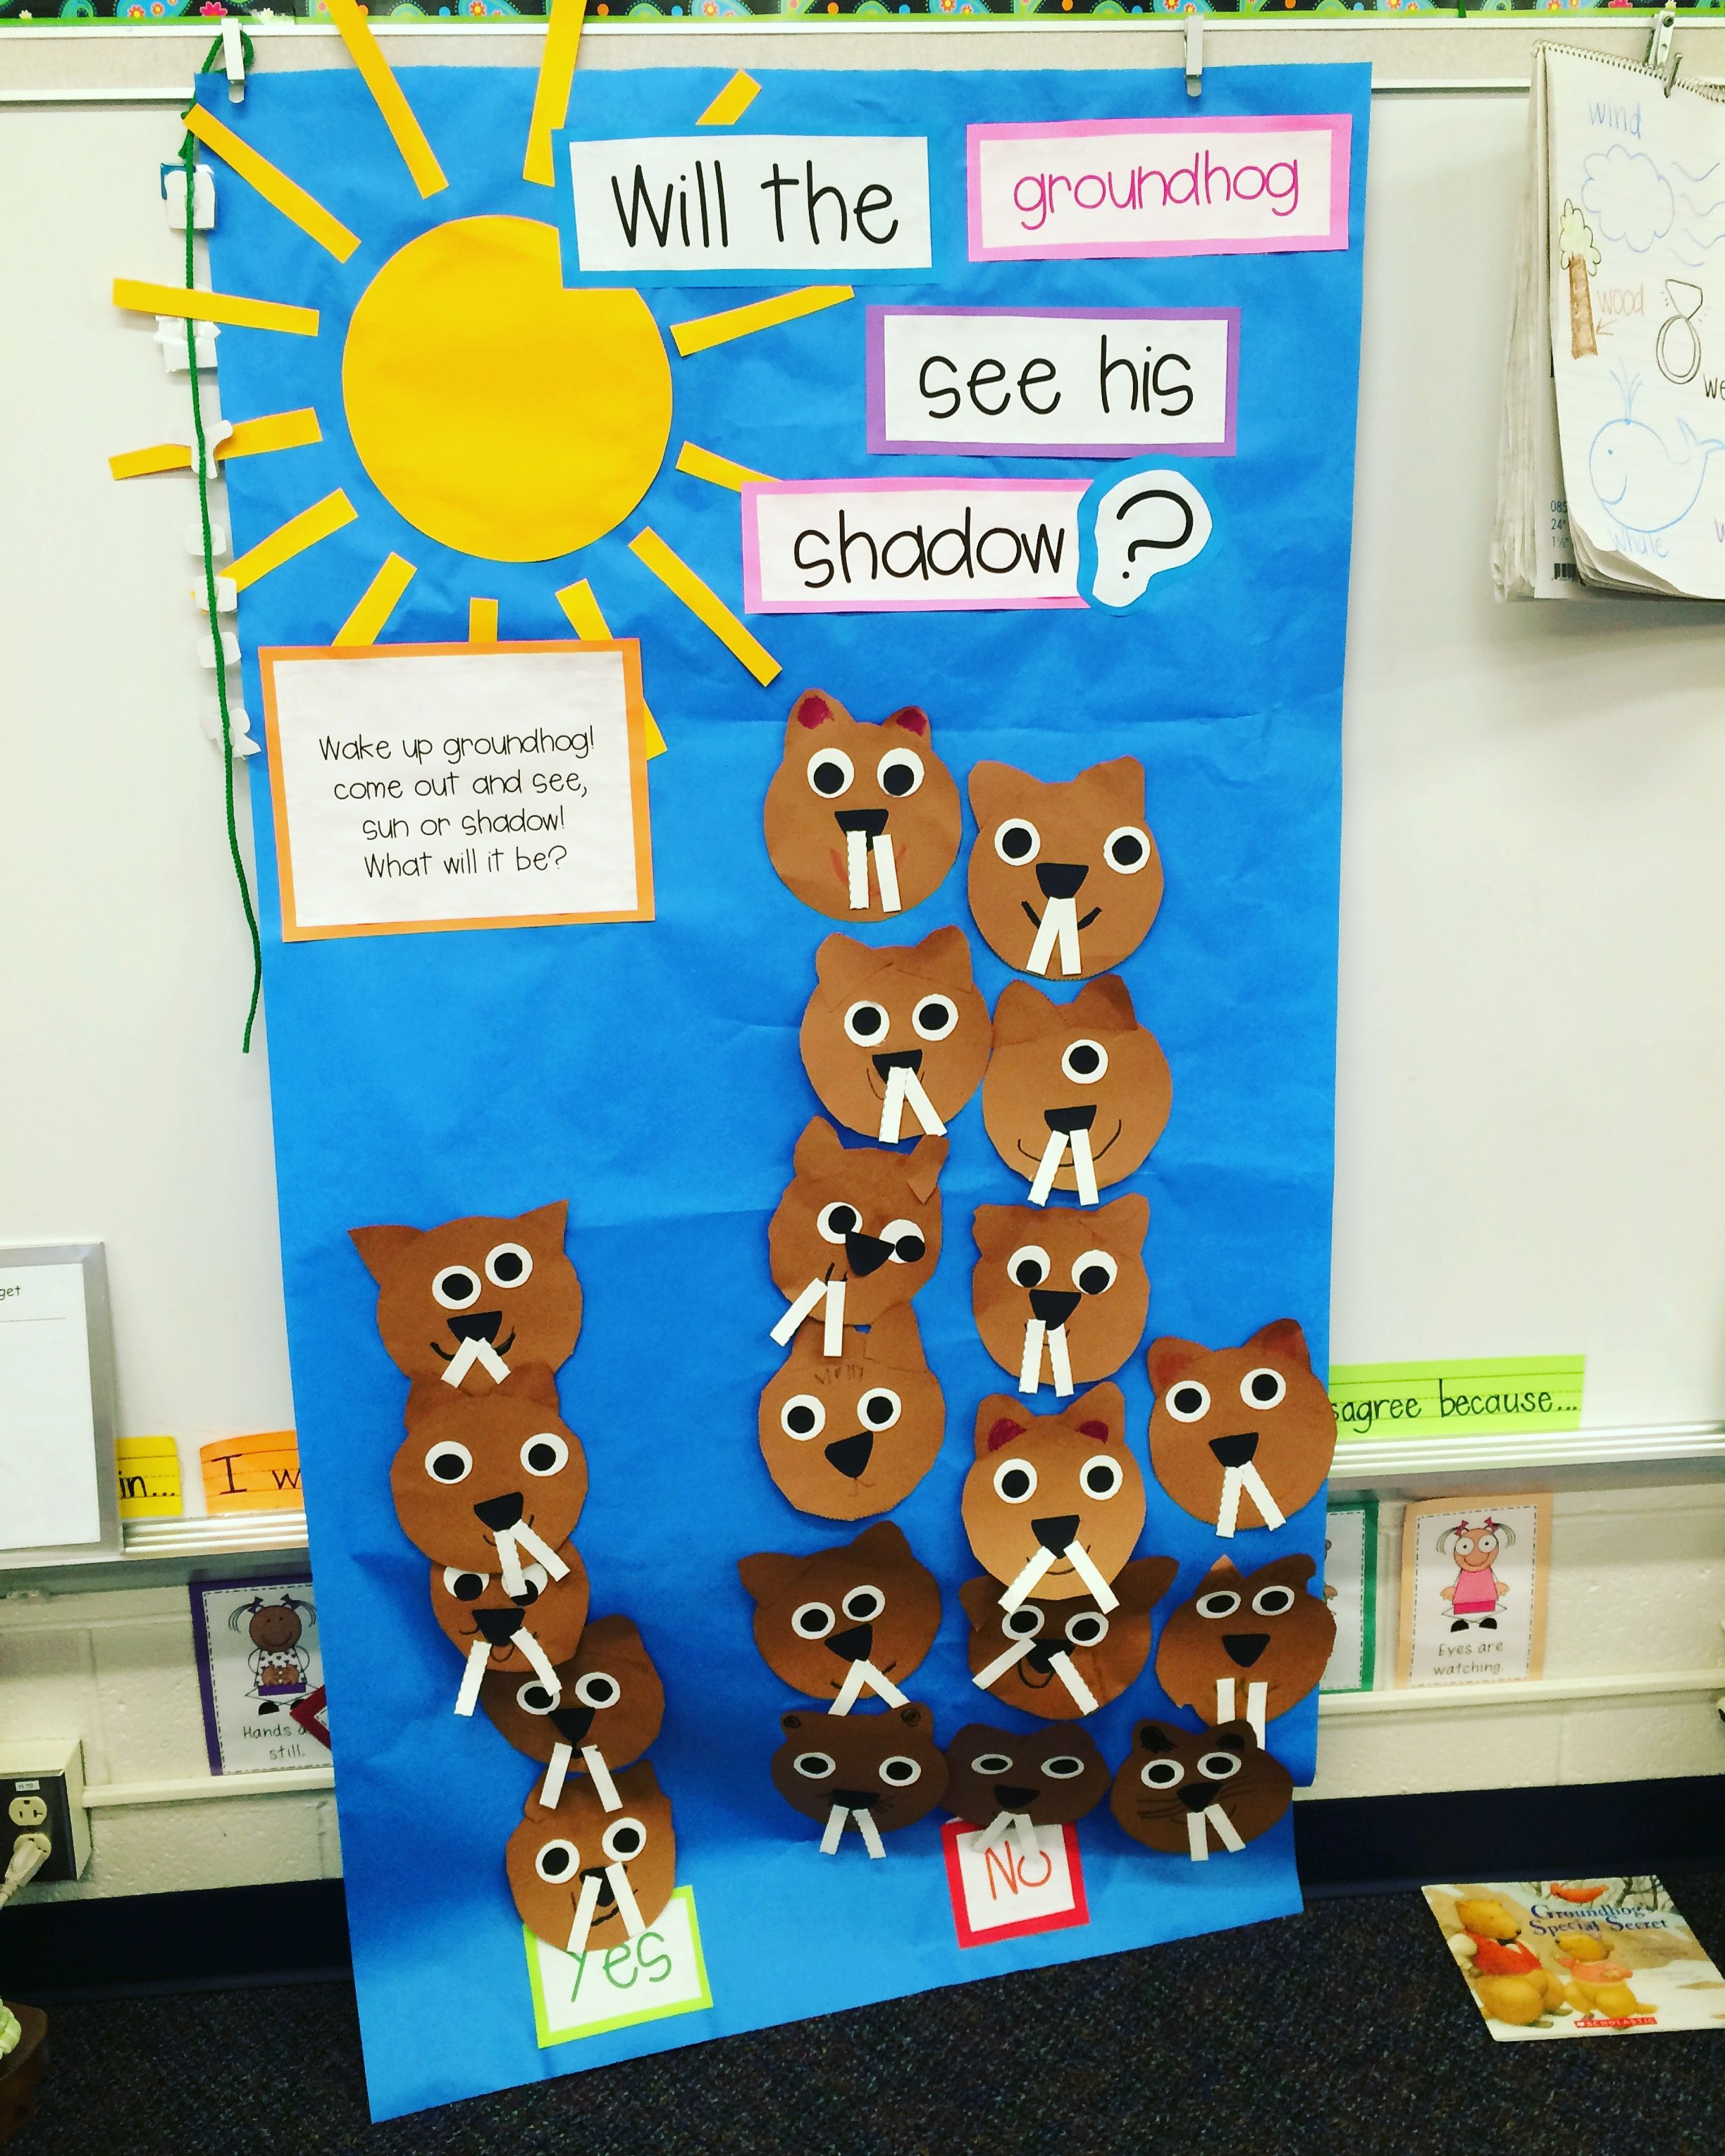 Groundhog S Day Graphing Fun